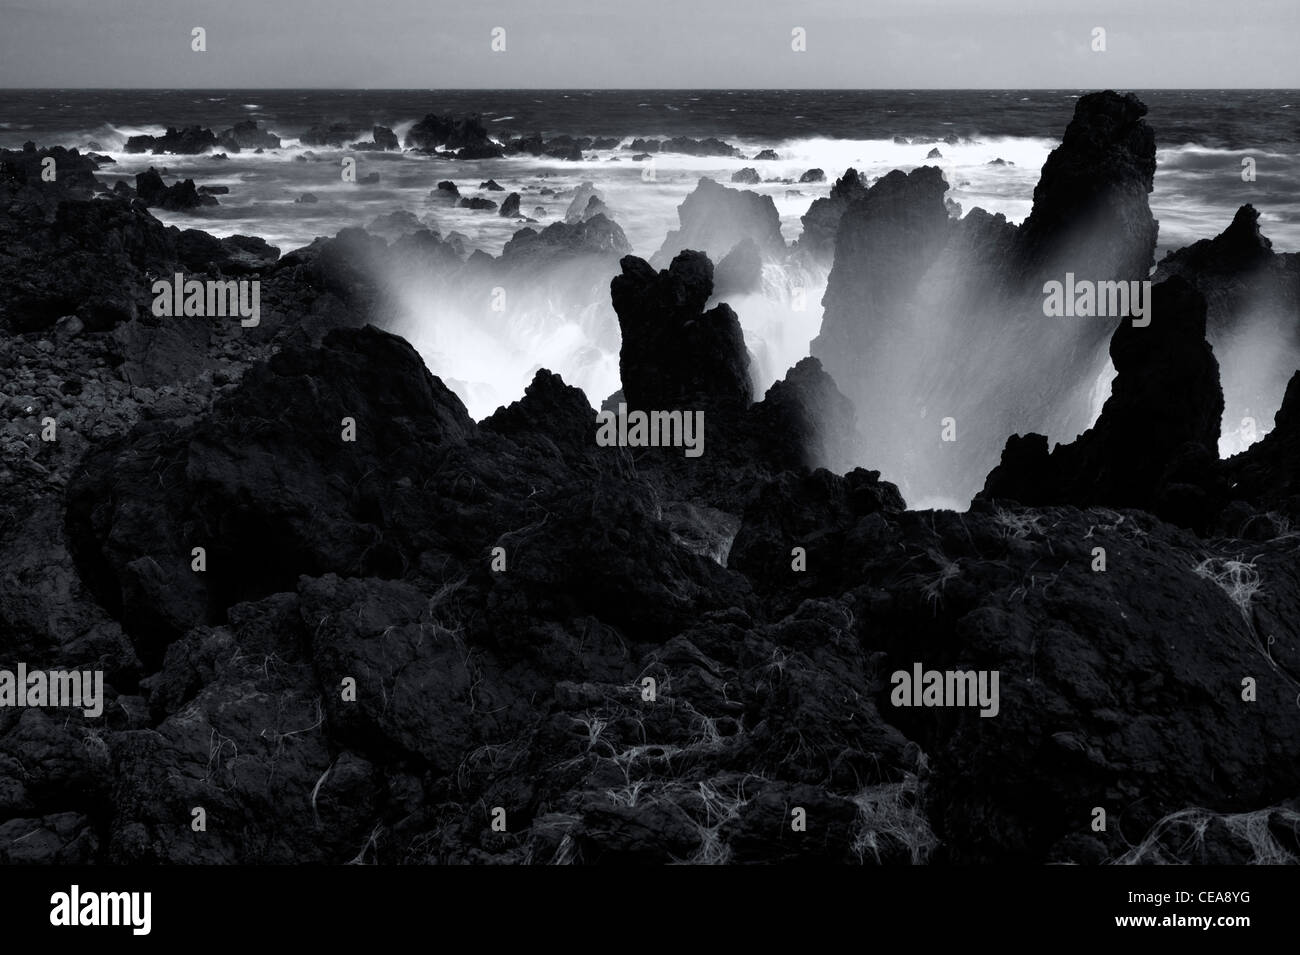 Crashing waves at Laupahoehoe Point. Hawaii, The Big Island. - Stock Image